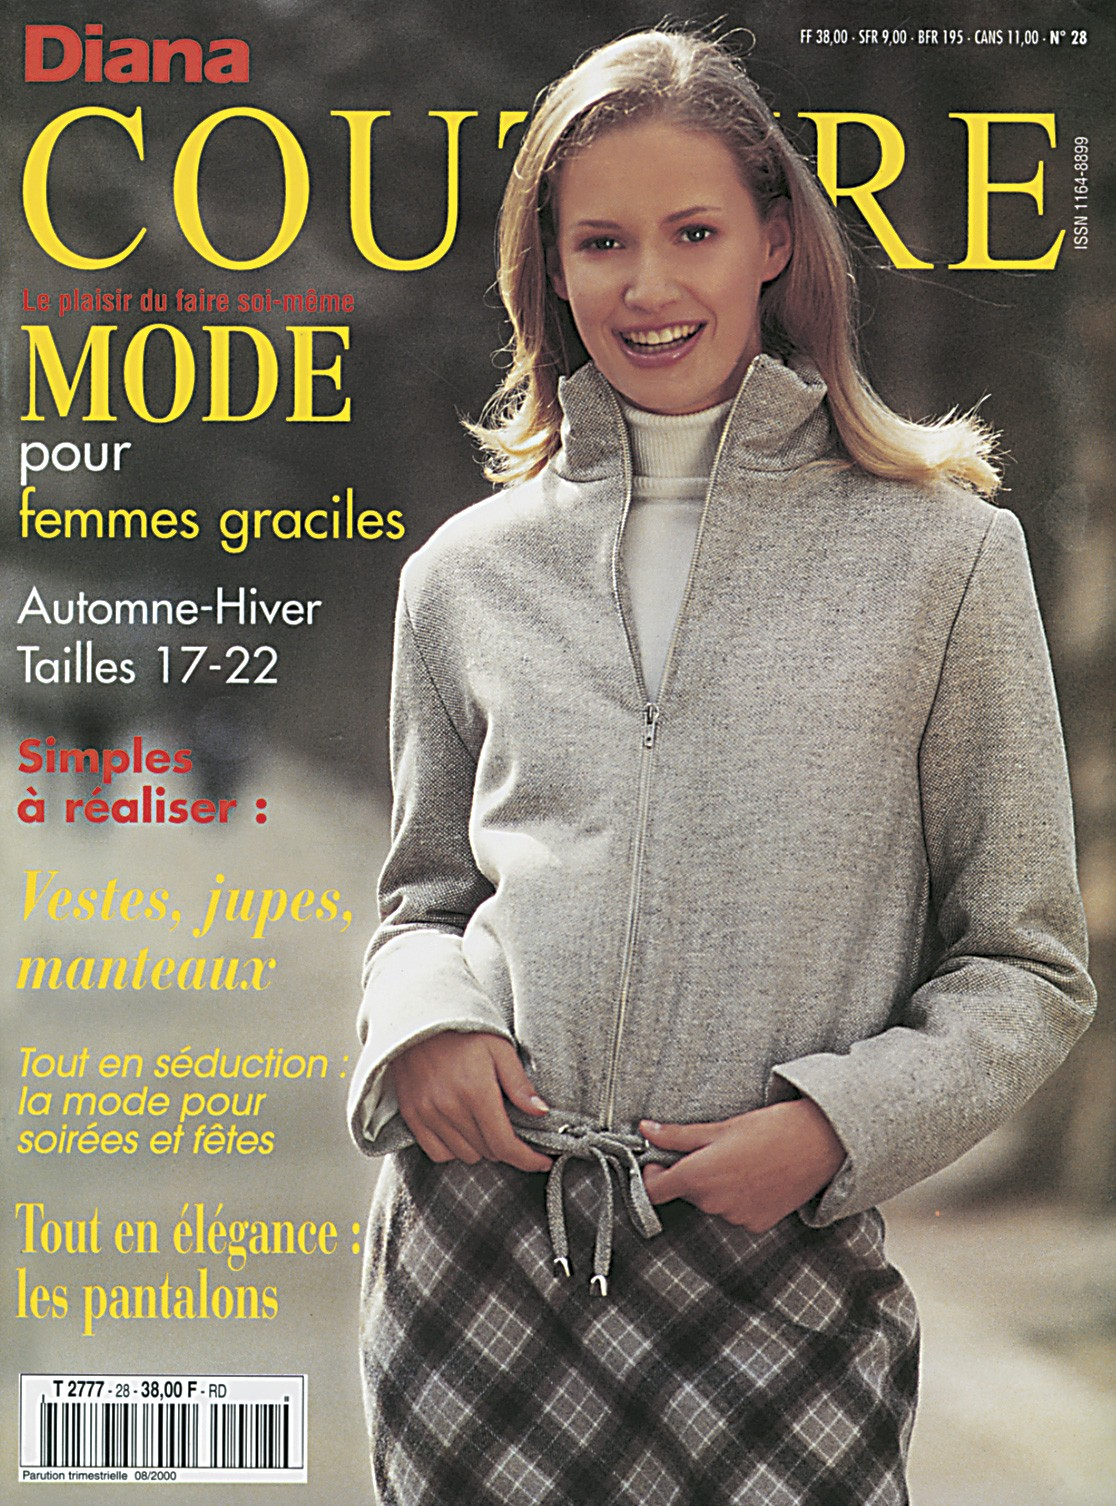 Diana Couture N°28 Automne-Hiver